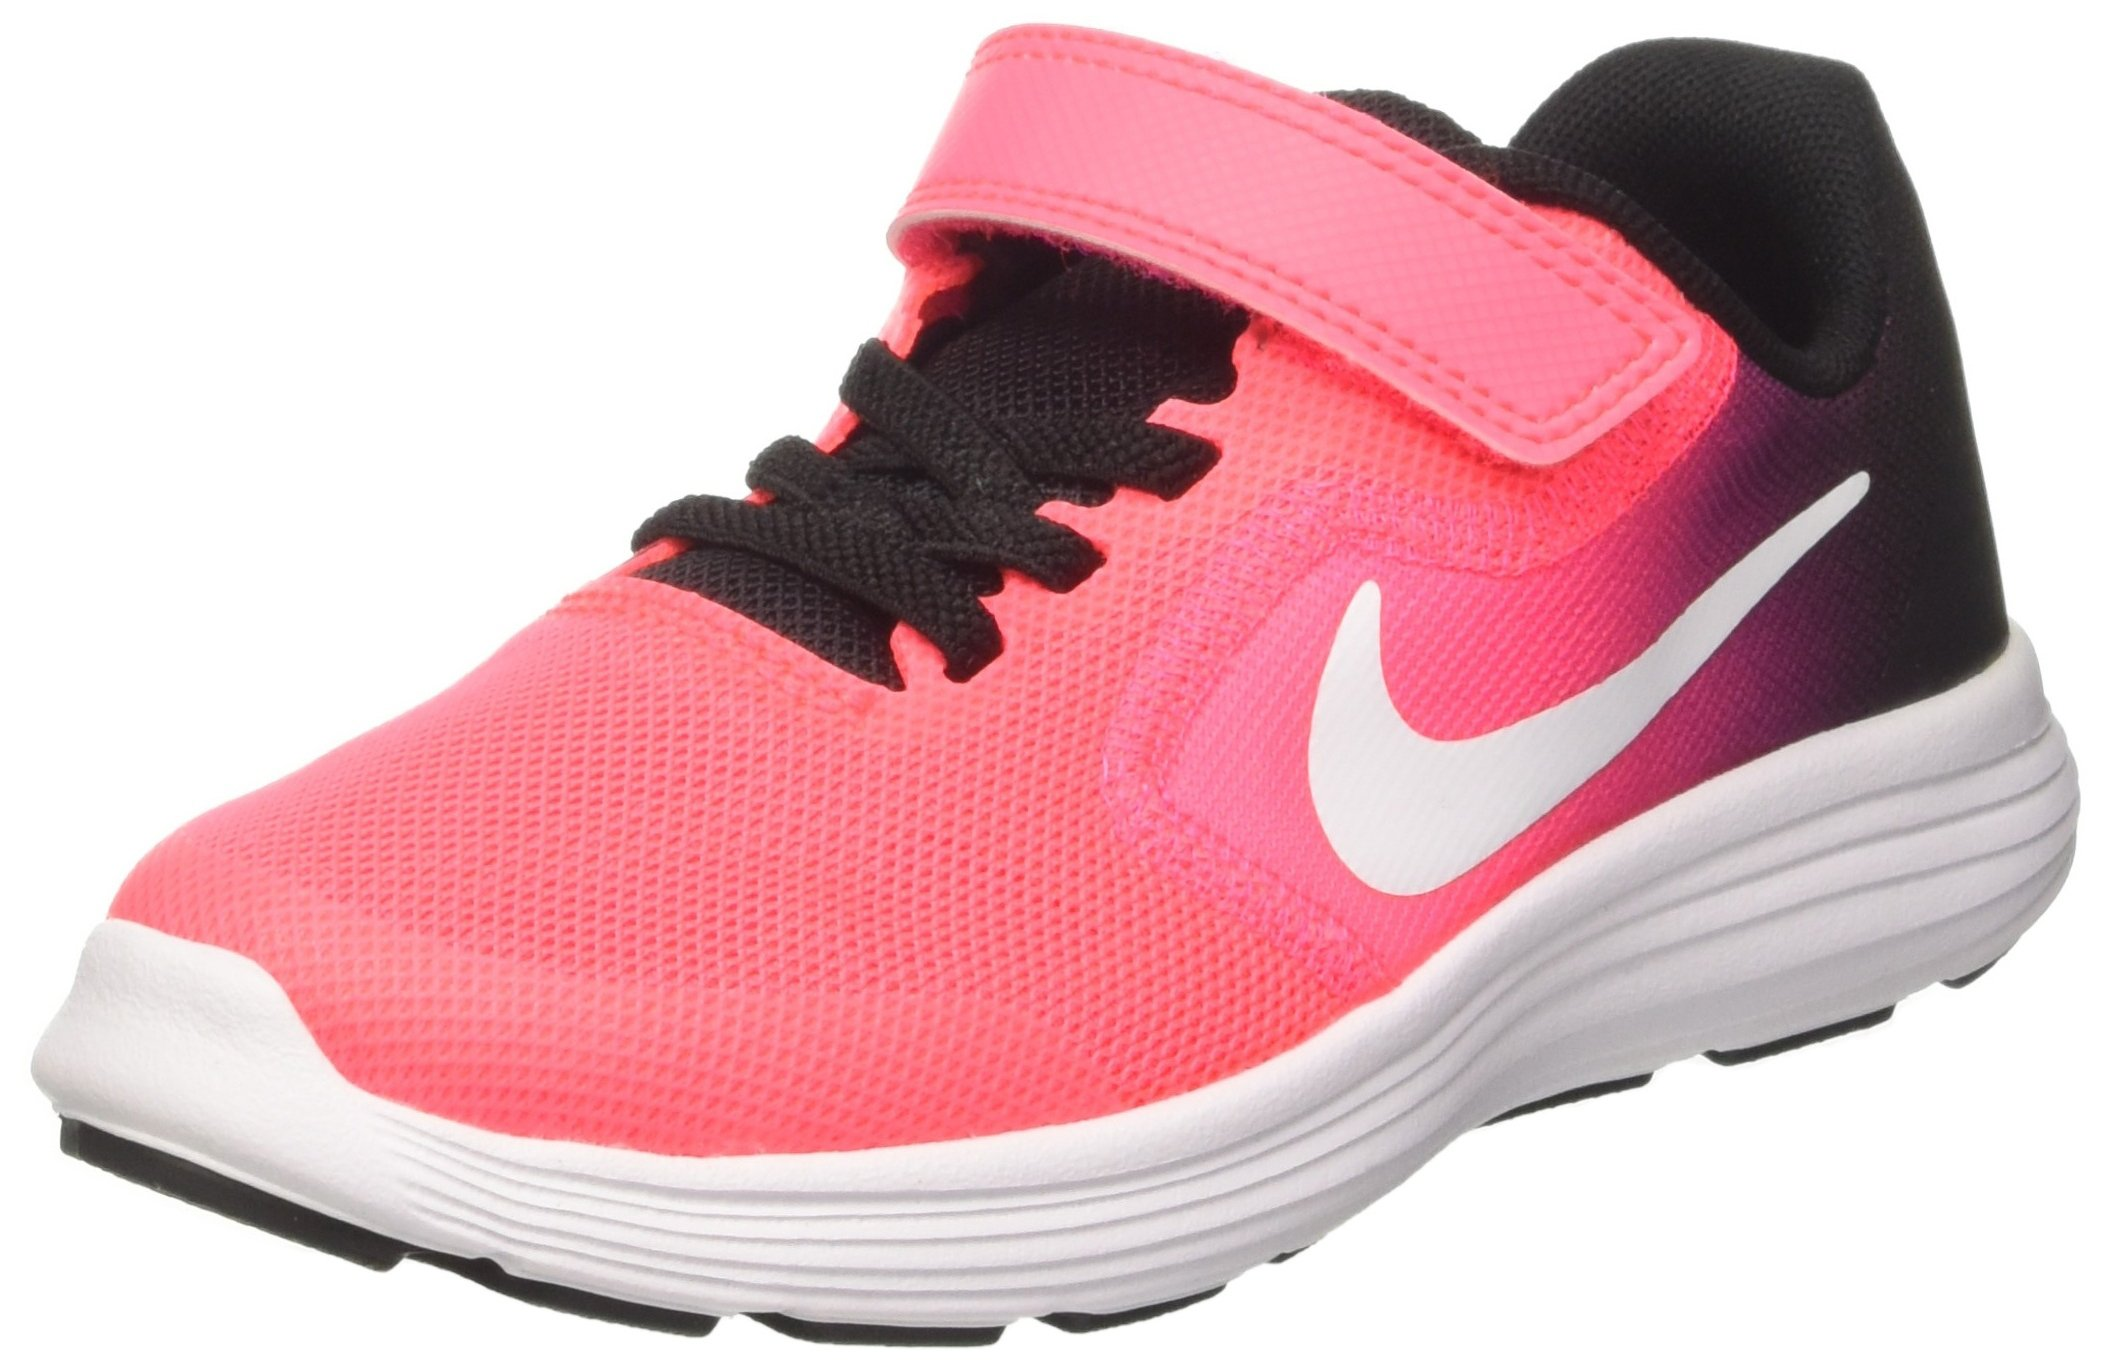 NIKE Kids' Revolution 3 (Psv) Running-Shoes, Black/White/Racer Pink/Black, 1 M US Little Kid by Nike (Image #1)